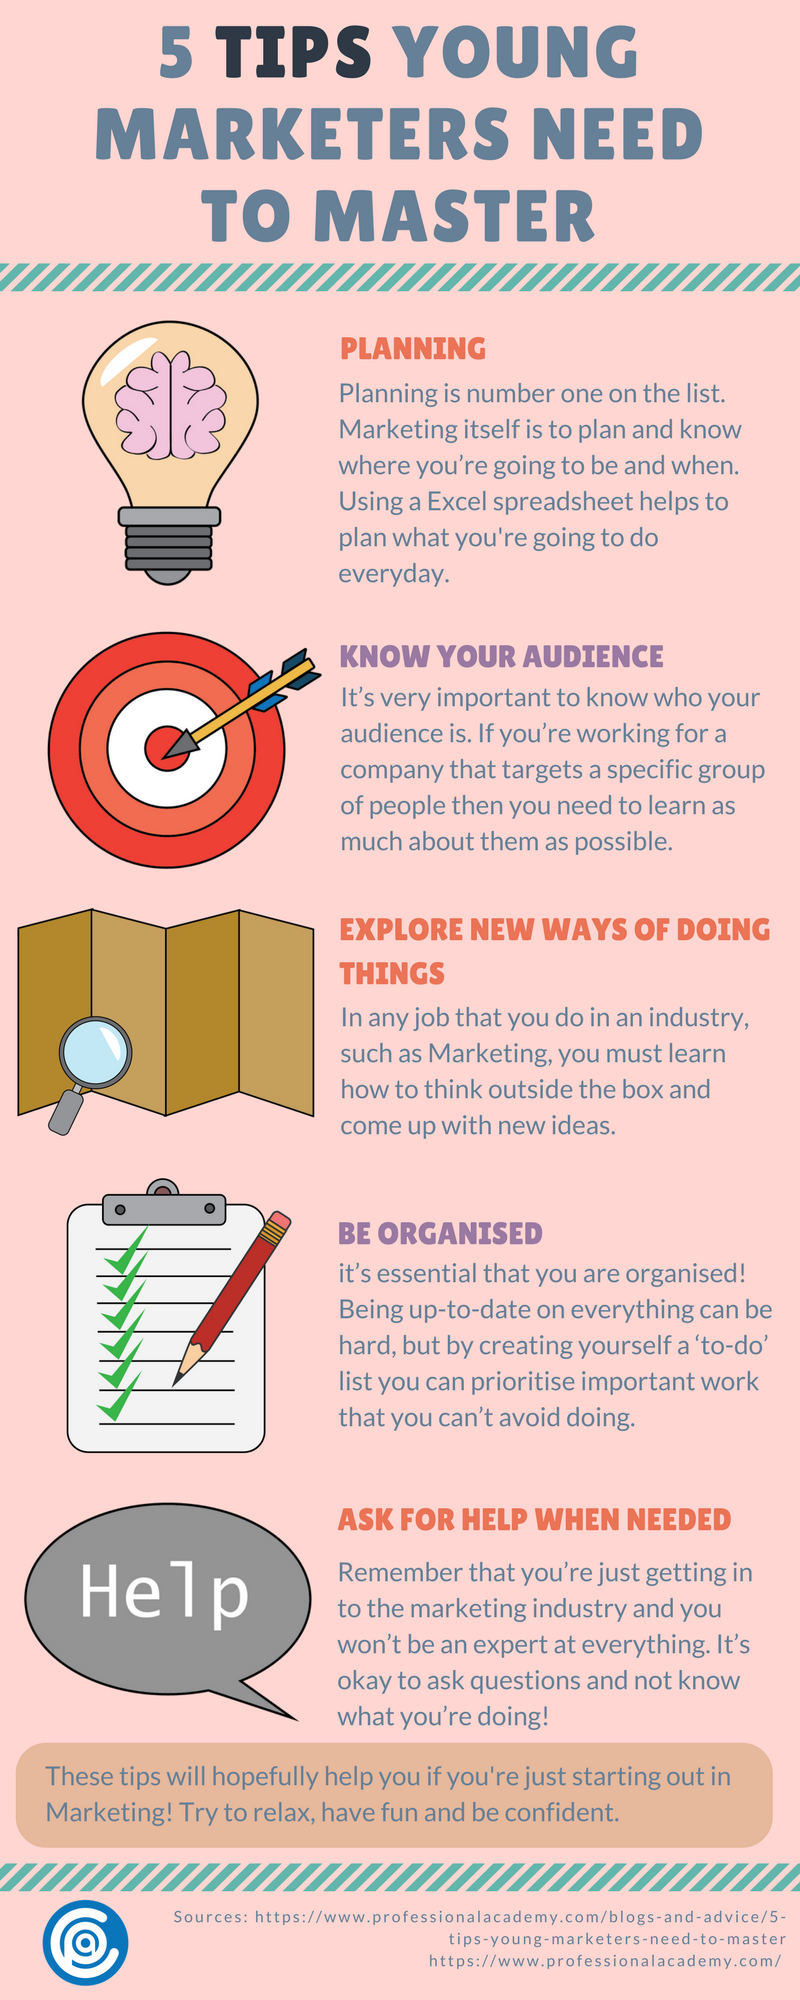 5 Tips Young Marketers Need to Master - Infographic